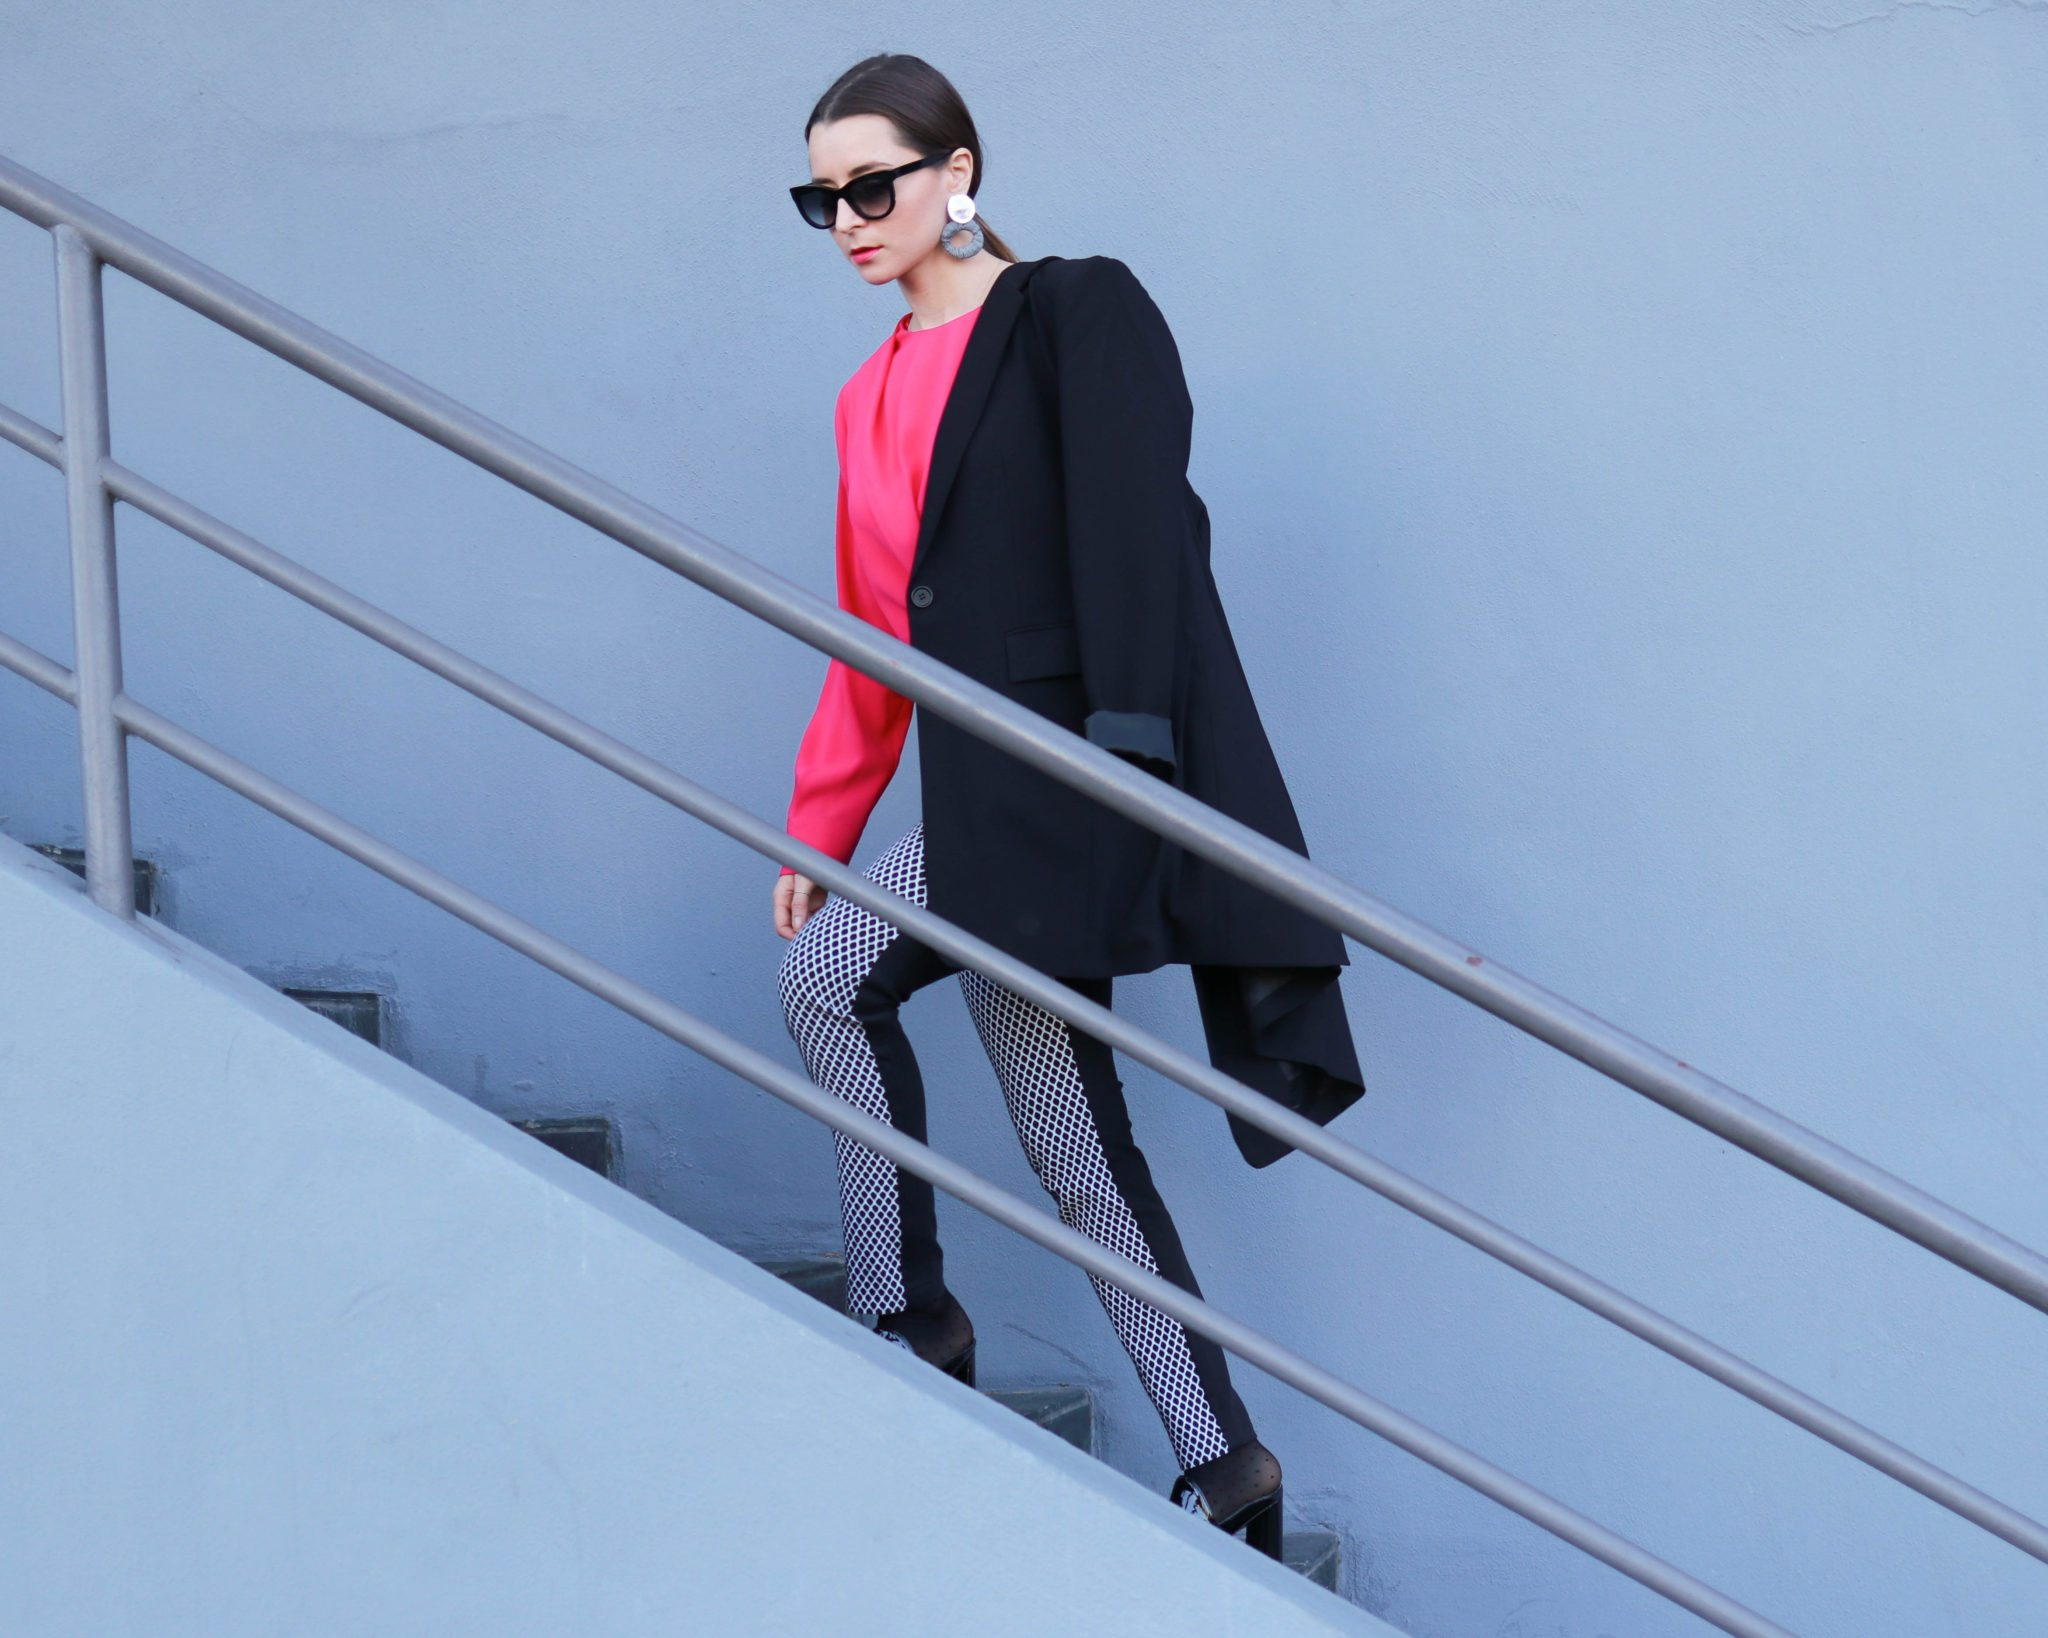 How to style the oversized blazer? 3 outfit ideas with the long black blazer for women from DSTLD. Get 20% off at DSTLD - more info on House of Comil - Fashion style blog by the French Fashion Blogger Julia Comil based in Los Angeles